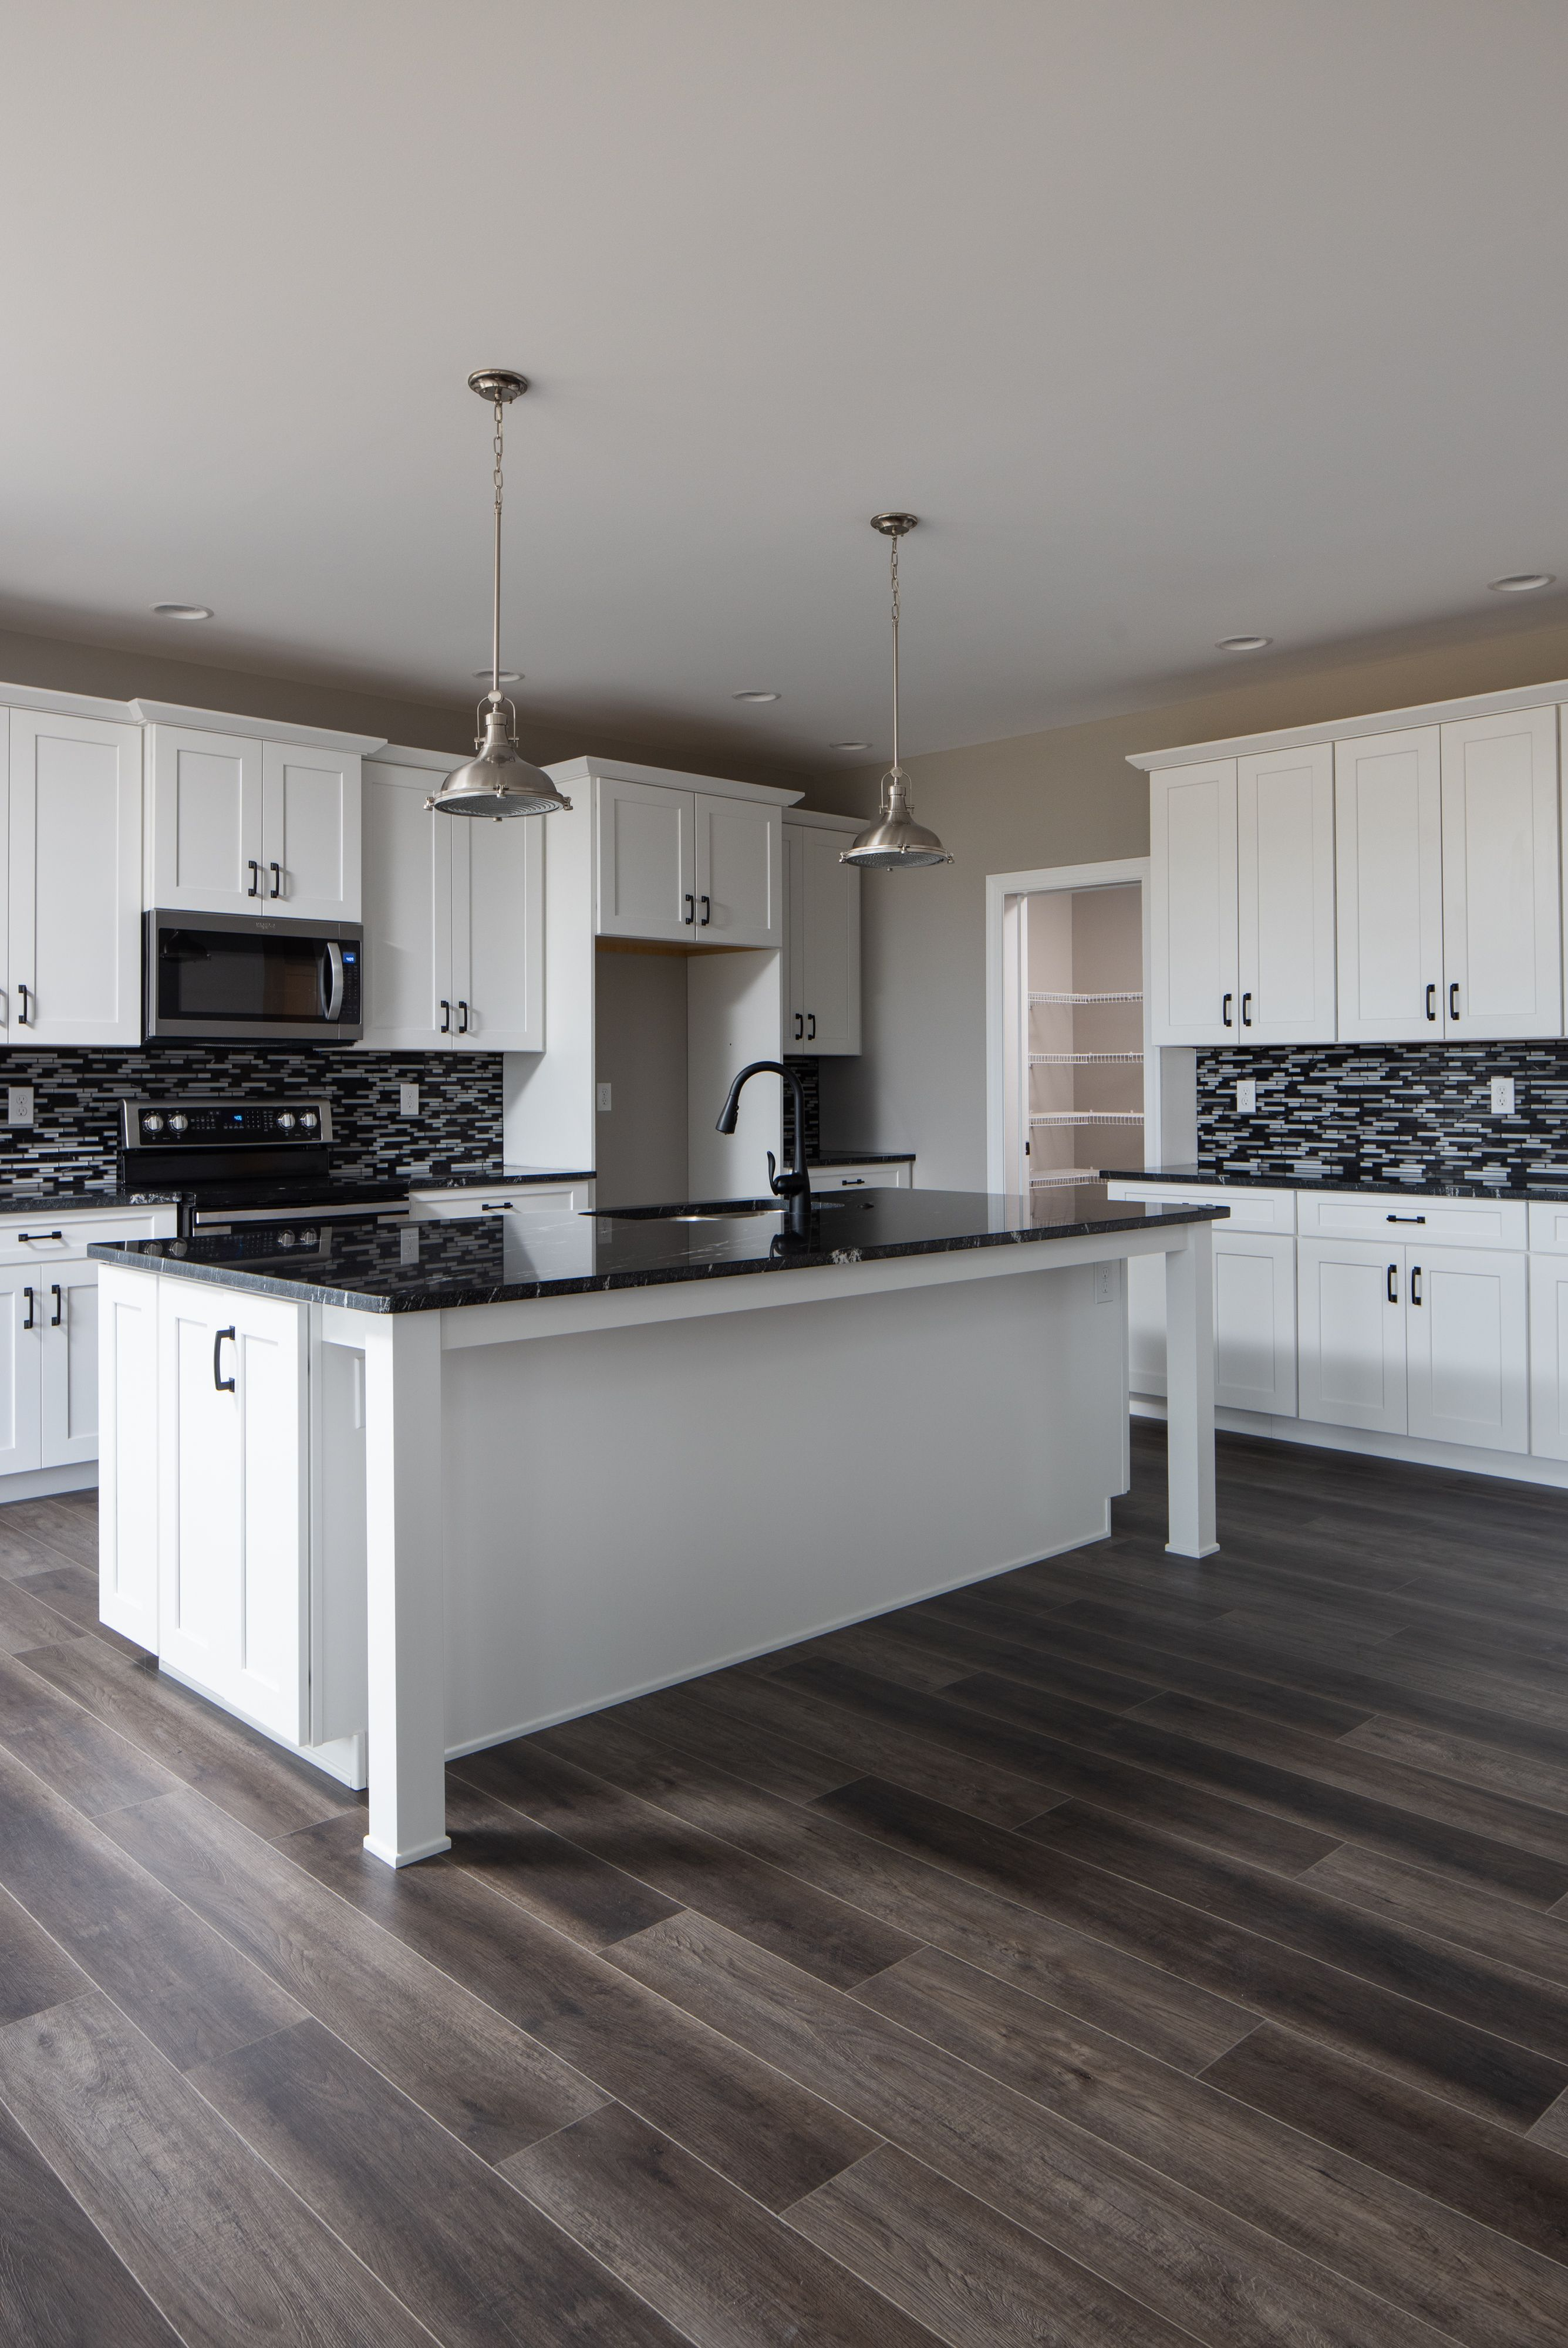 Kitchen featured in the Hawthorne Heritage By Keystone Custom Homes in Baltimore, MD